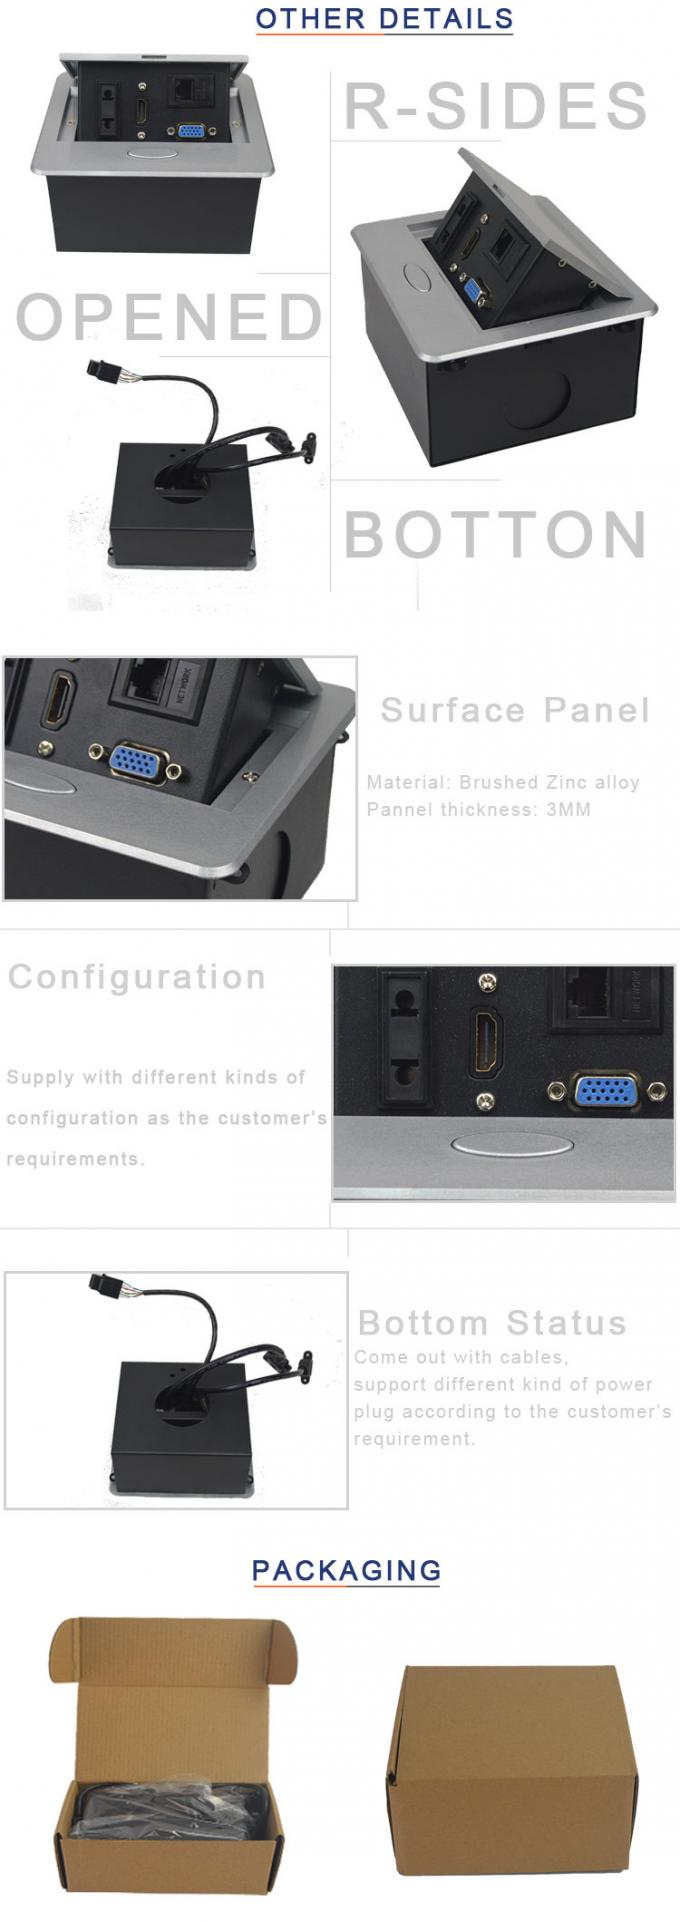 Furniture Pop Up Multimedia Socket   30Cm  Connection Wires Plugs Cable  Length With 110~240V  Rated Voltage